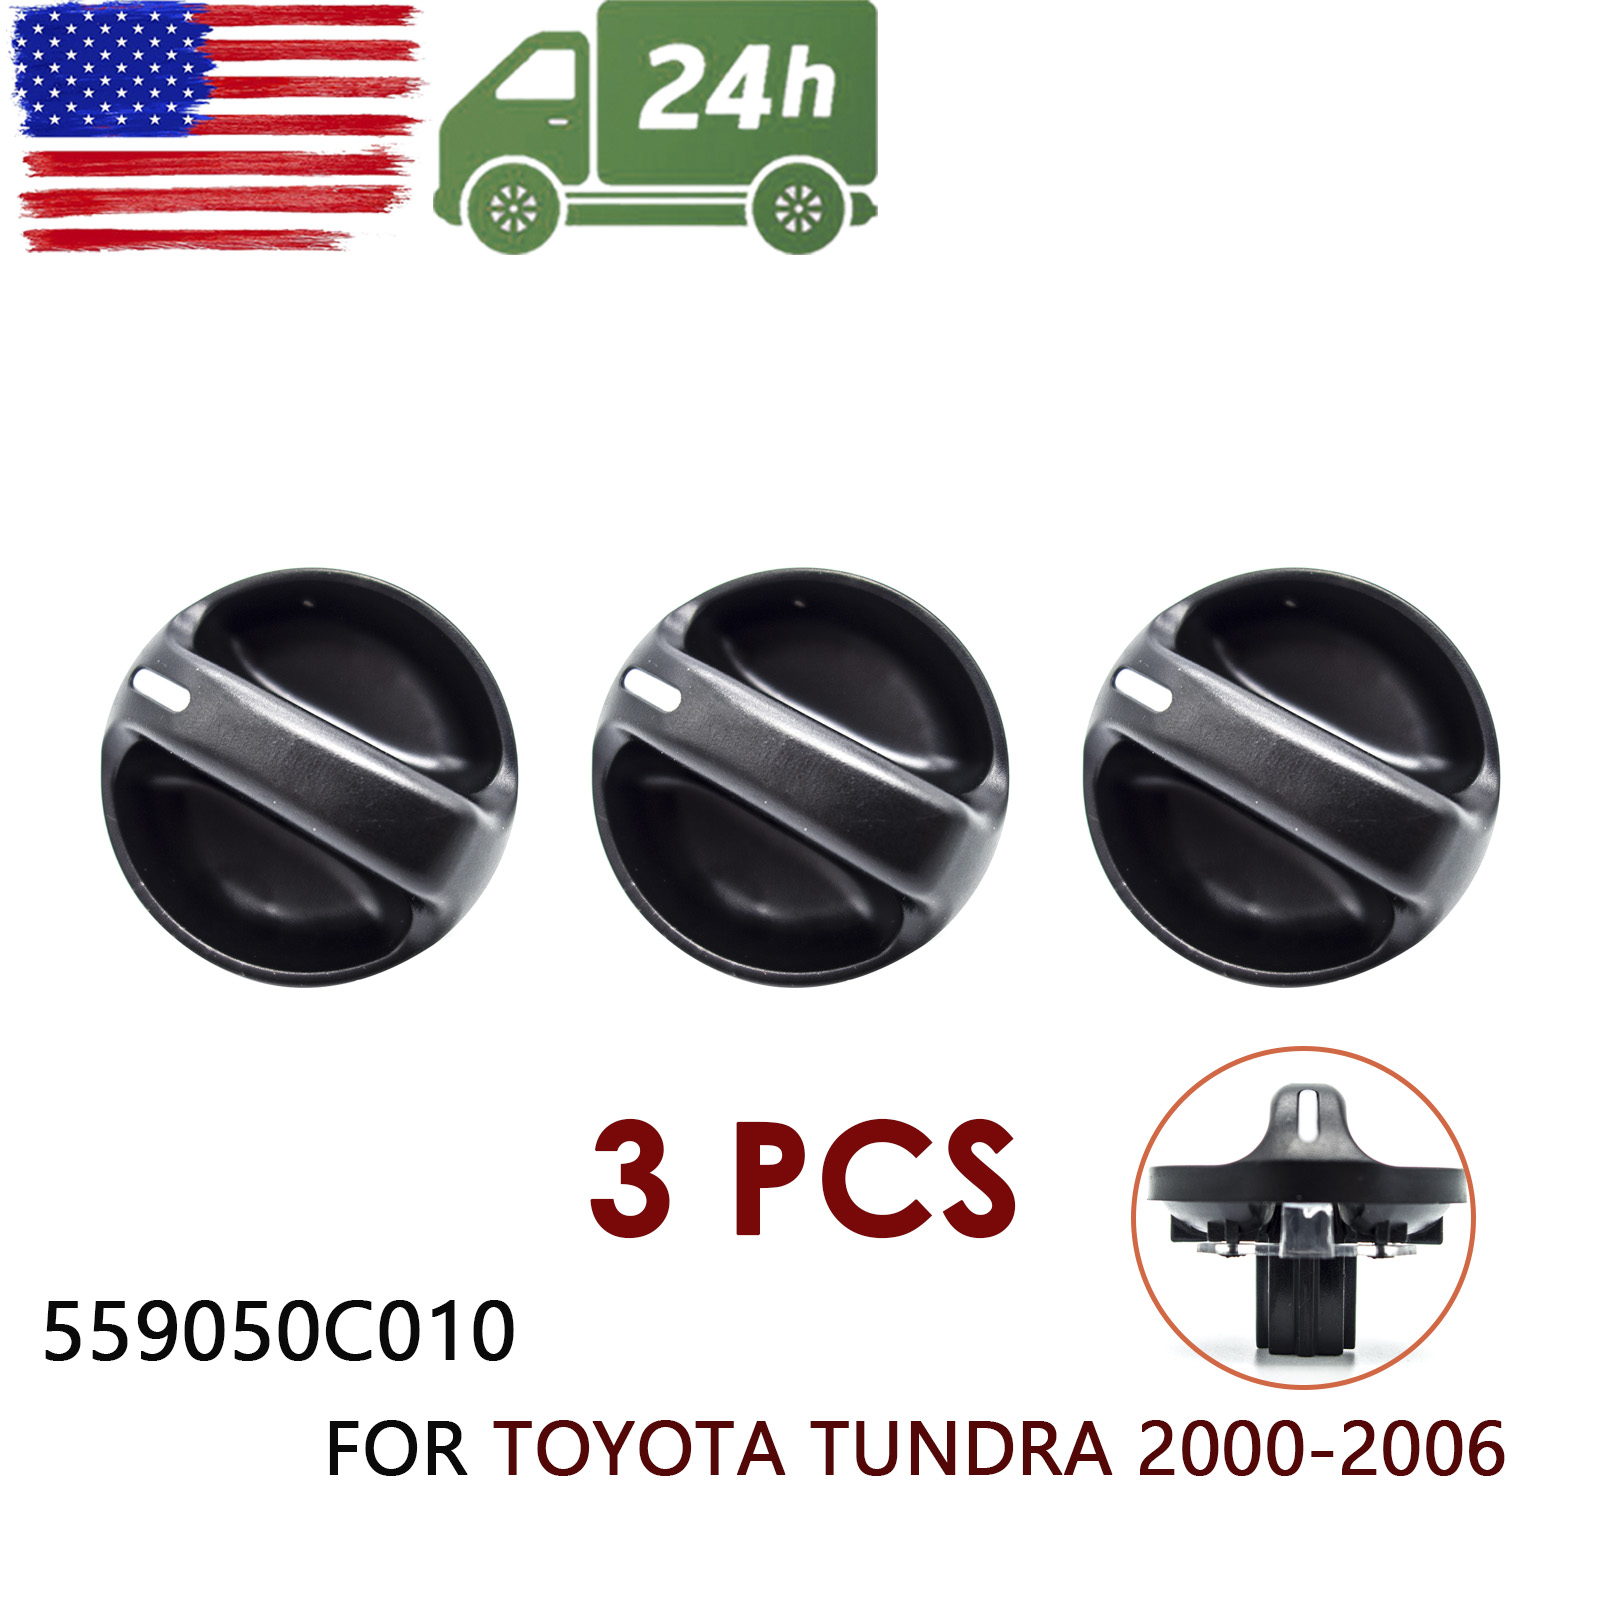 559050C010 Control Knob Heater A//C Air Condition Fan For Toyota Tundra 2000-2006